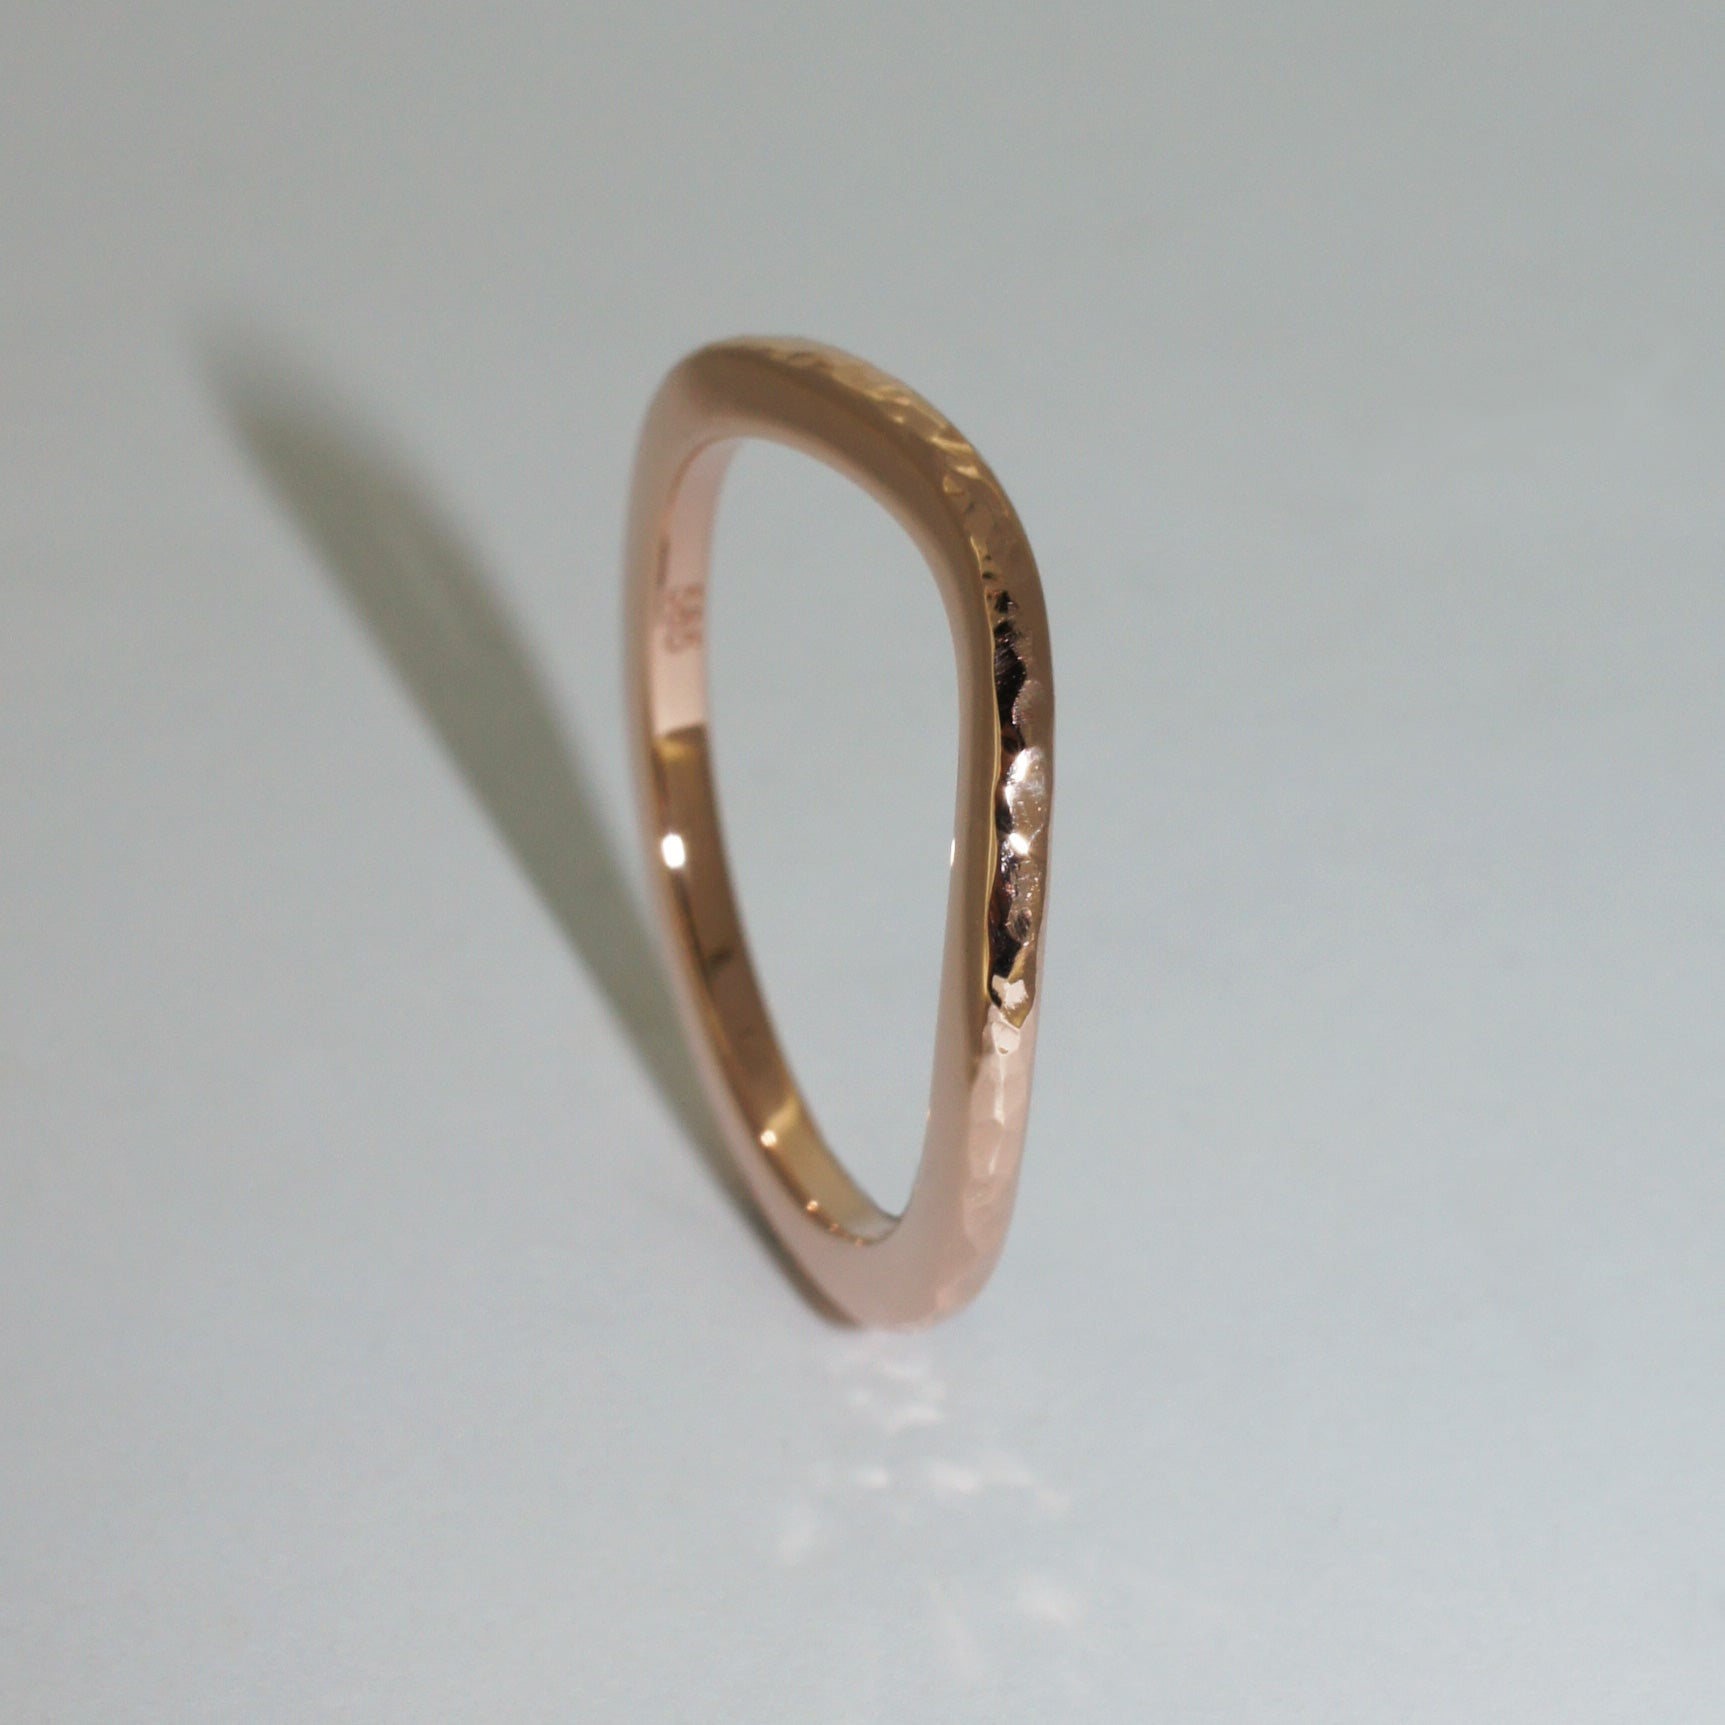 custom-made-rose-gold-curved-fitted-wedding-band-sydney-jewellers-lizunova